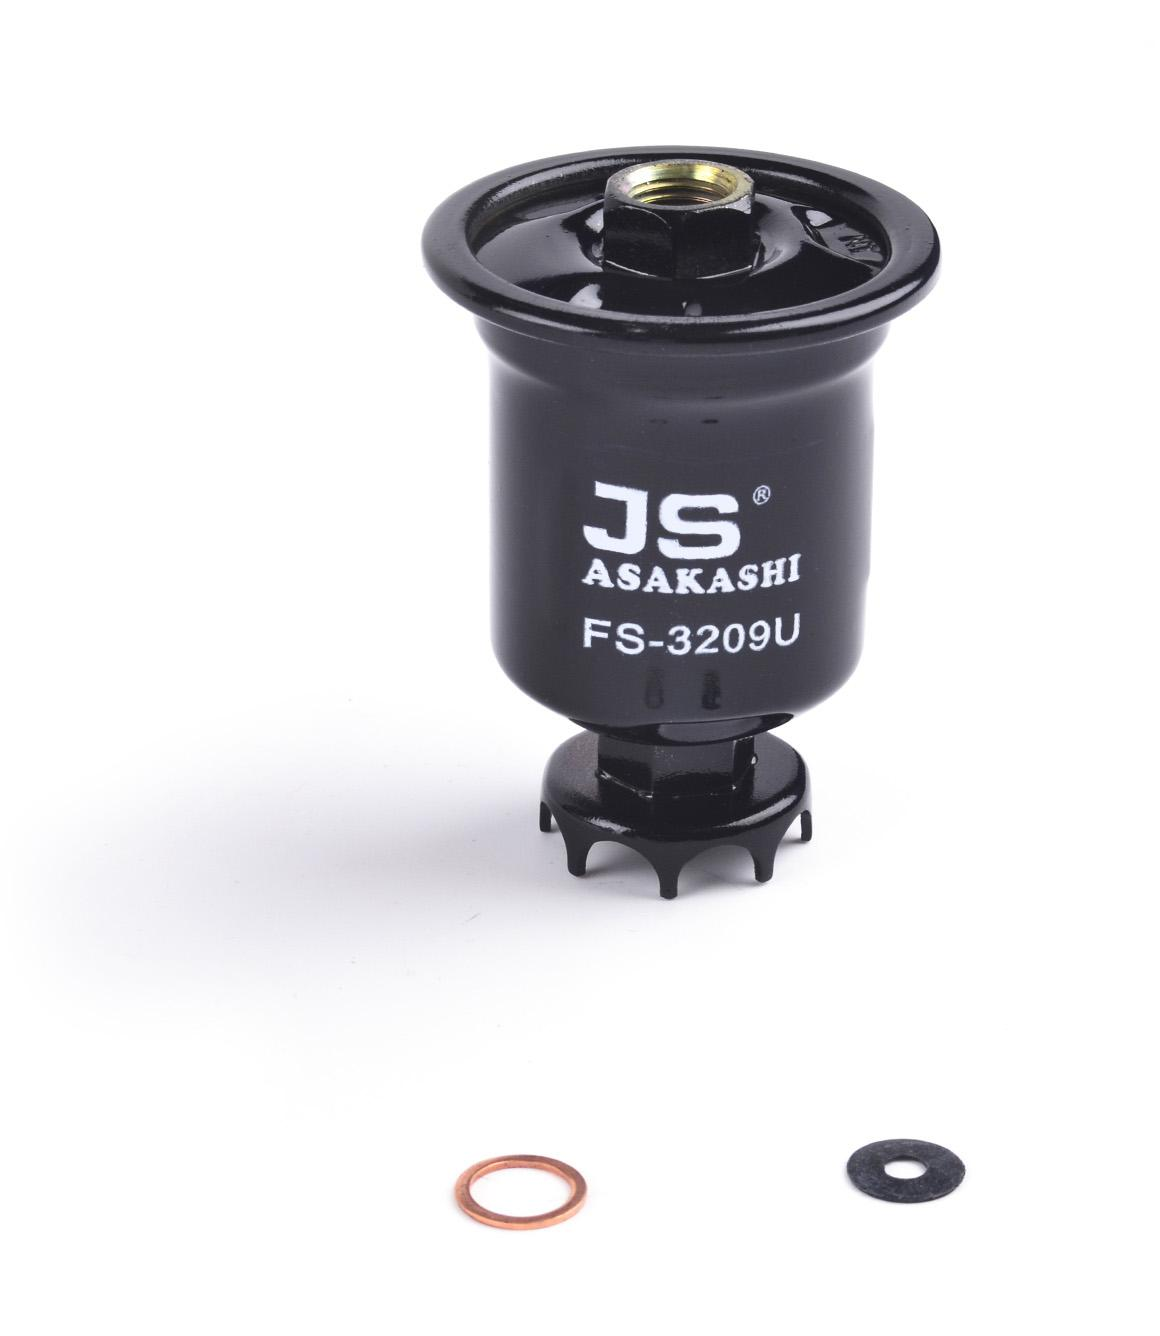 Fs3209z Efi Fuel Filter Fs 1025 Ff2176 Z515 Mr204132 2003 Accord Mitsubishi Cars Lancer Ce2 4g93 4 18l Petrol Mpfi 1999